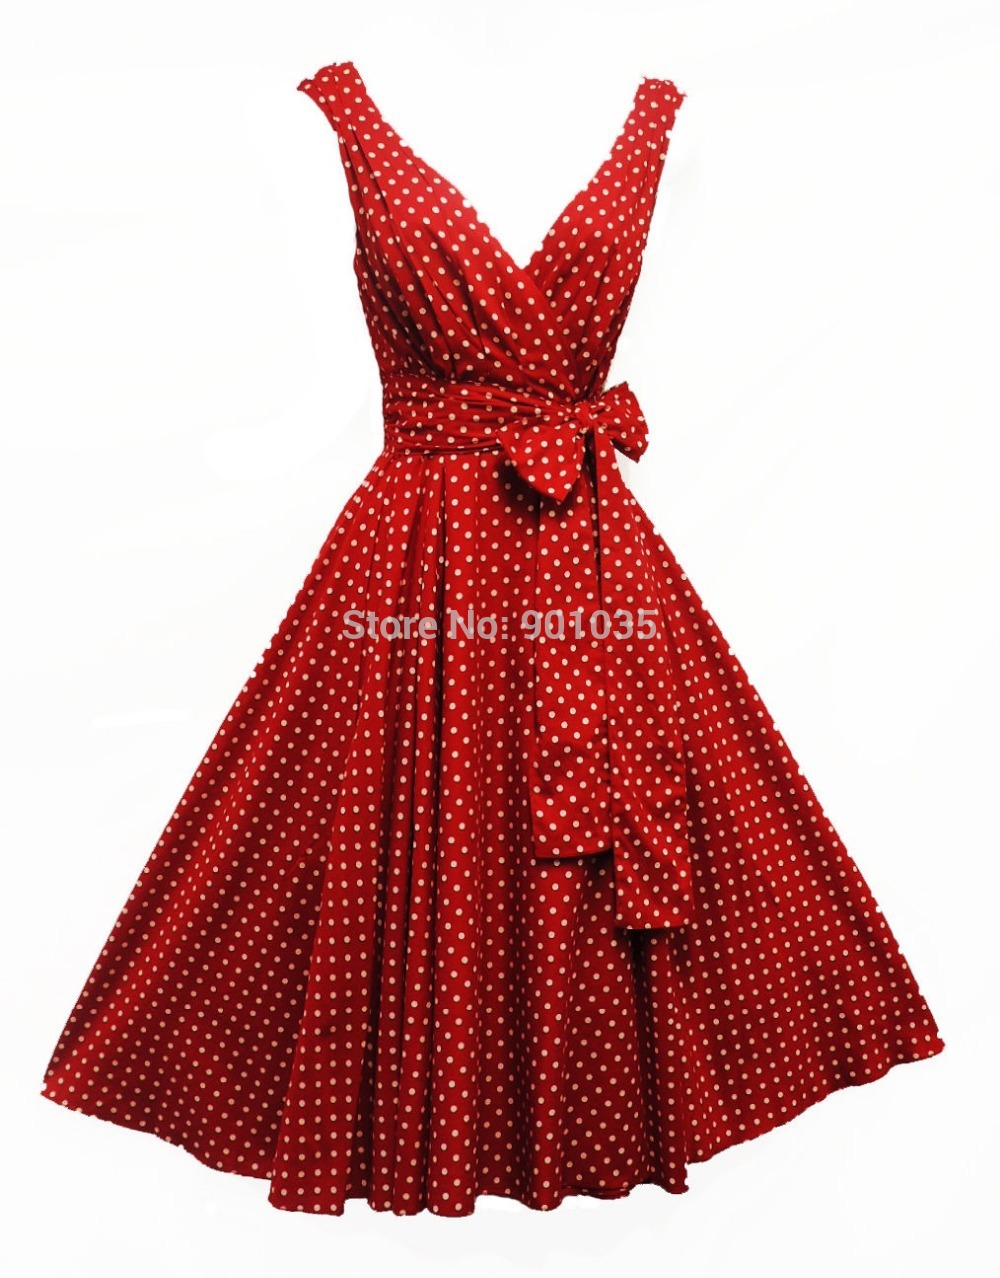 Get Quotations · Free Shipping New Ladies Vtg 1950s style Red Polka Dot  Rockabilly Summer Swing Tea Dress c30bdb92d6d7